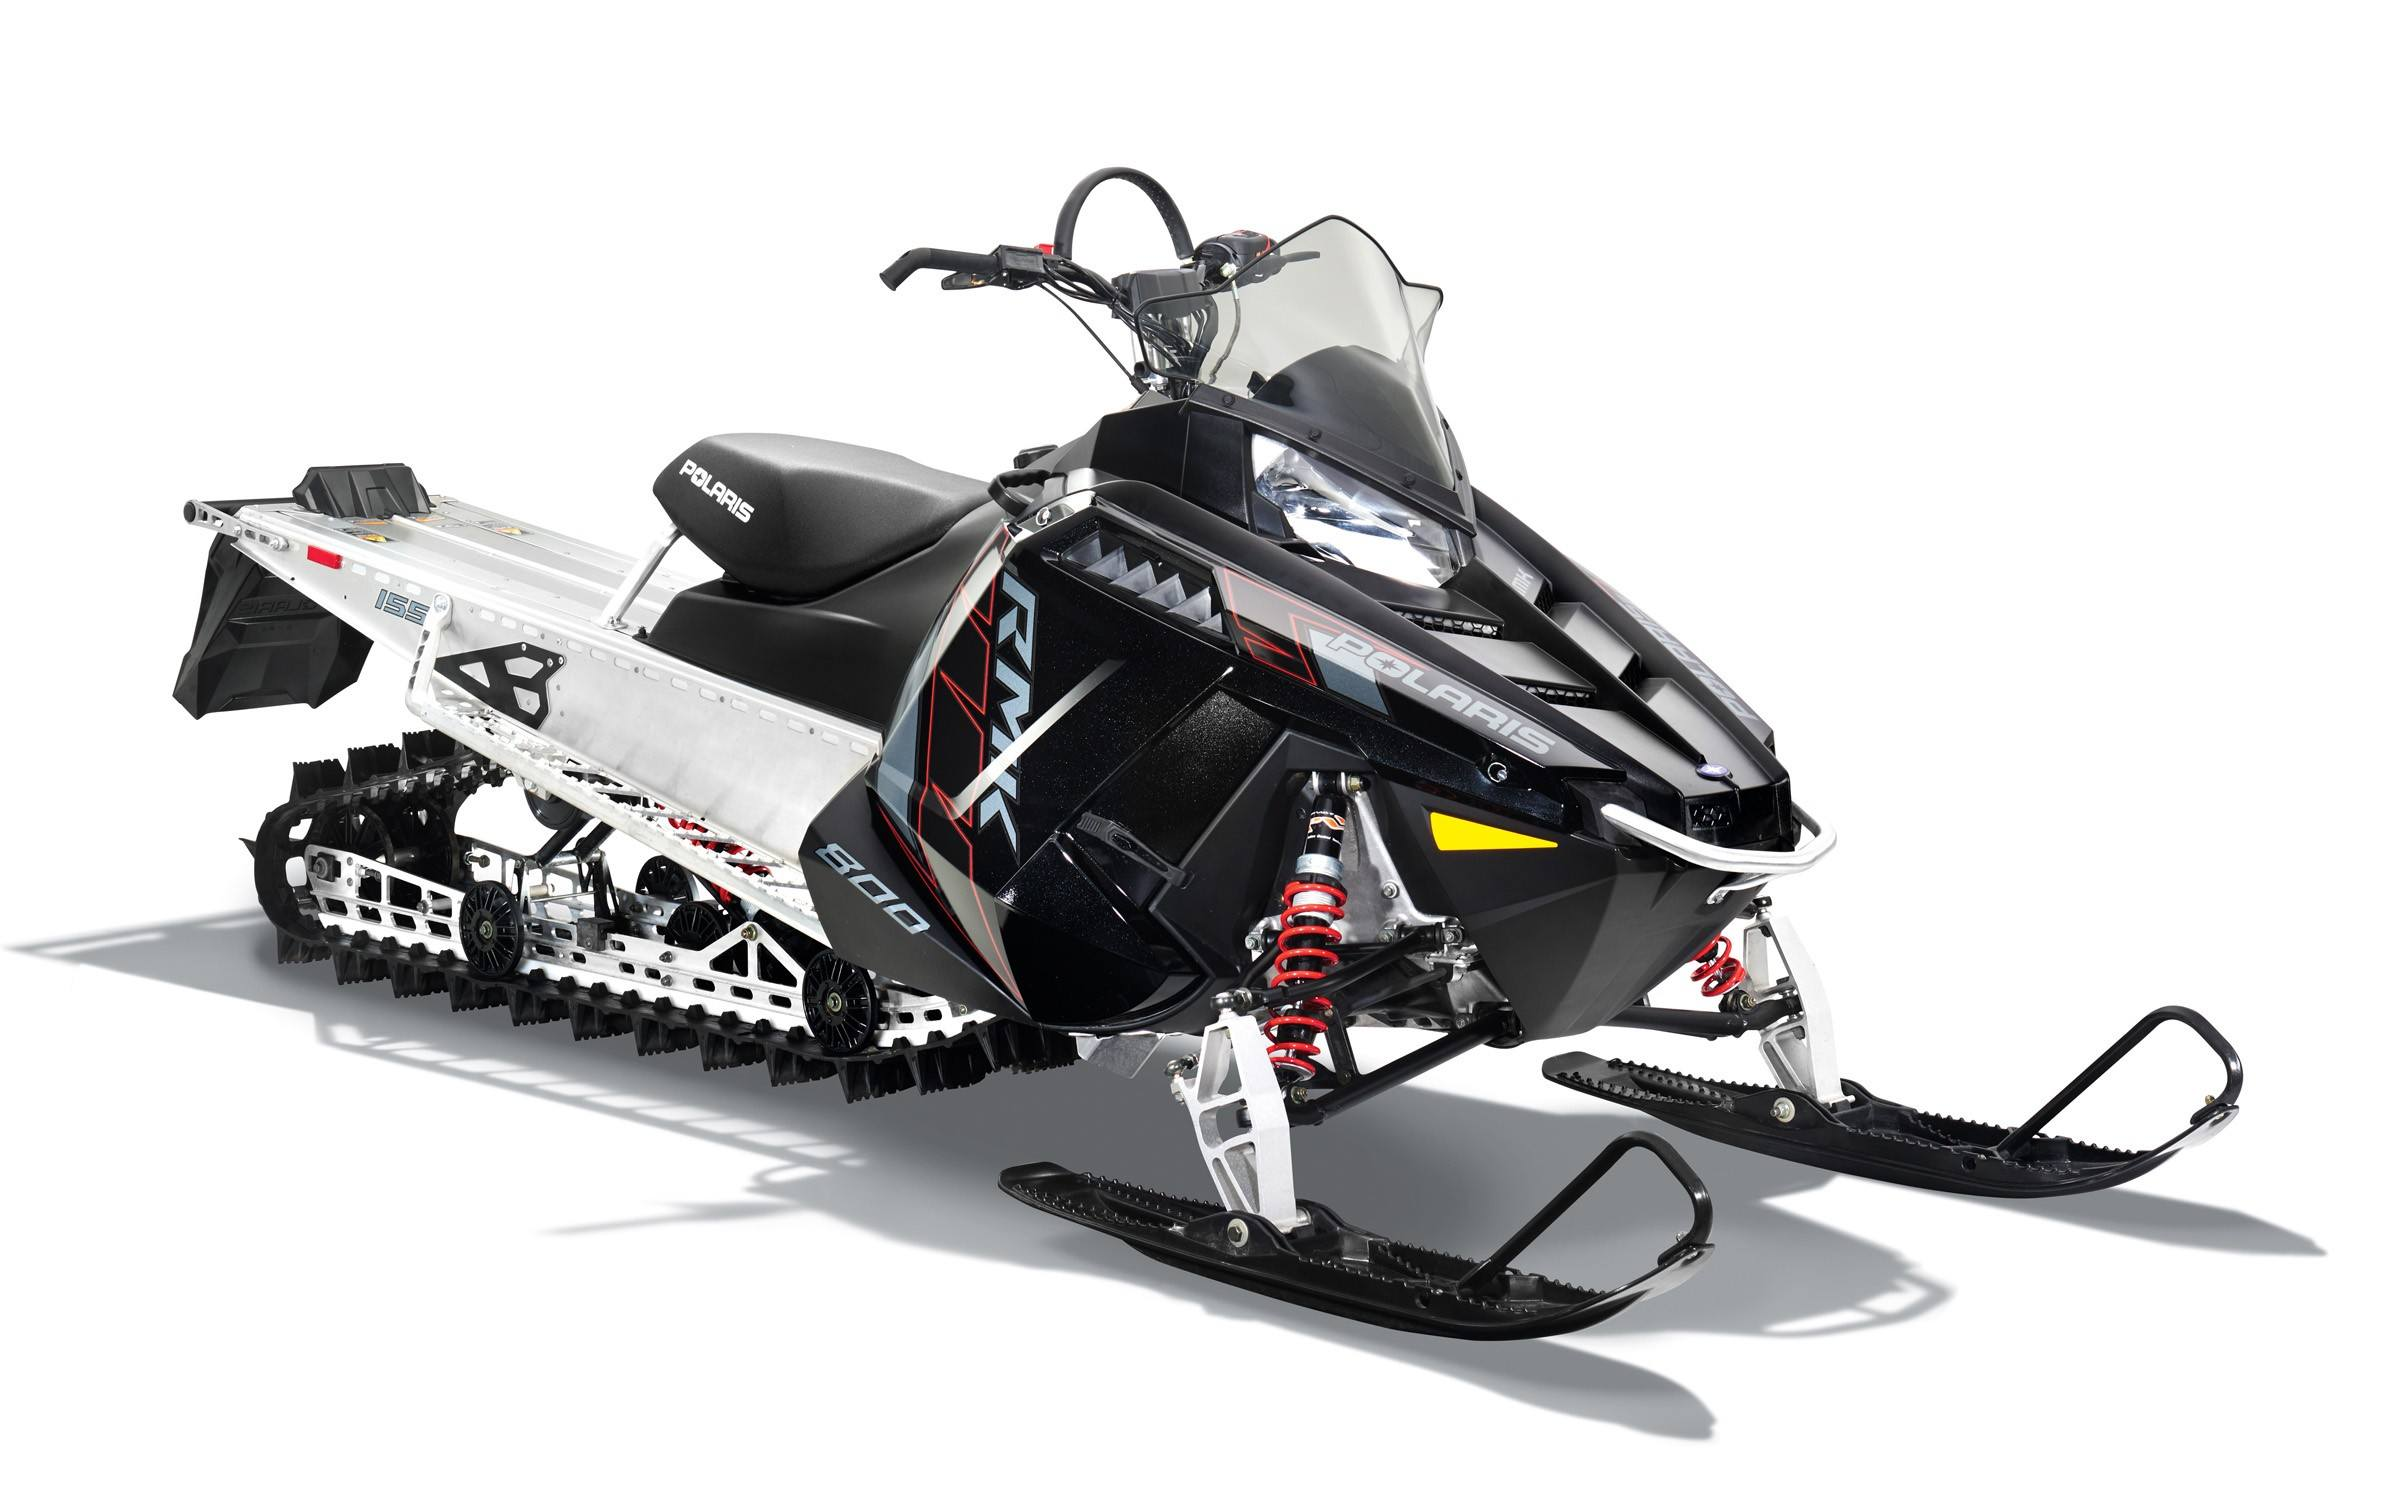 2016 Polaris 800 RMK 155 in Lake Mills, Iowa - Photo 1